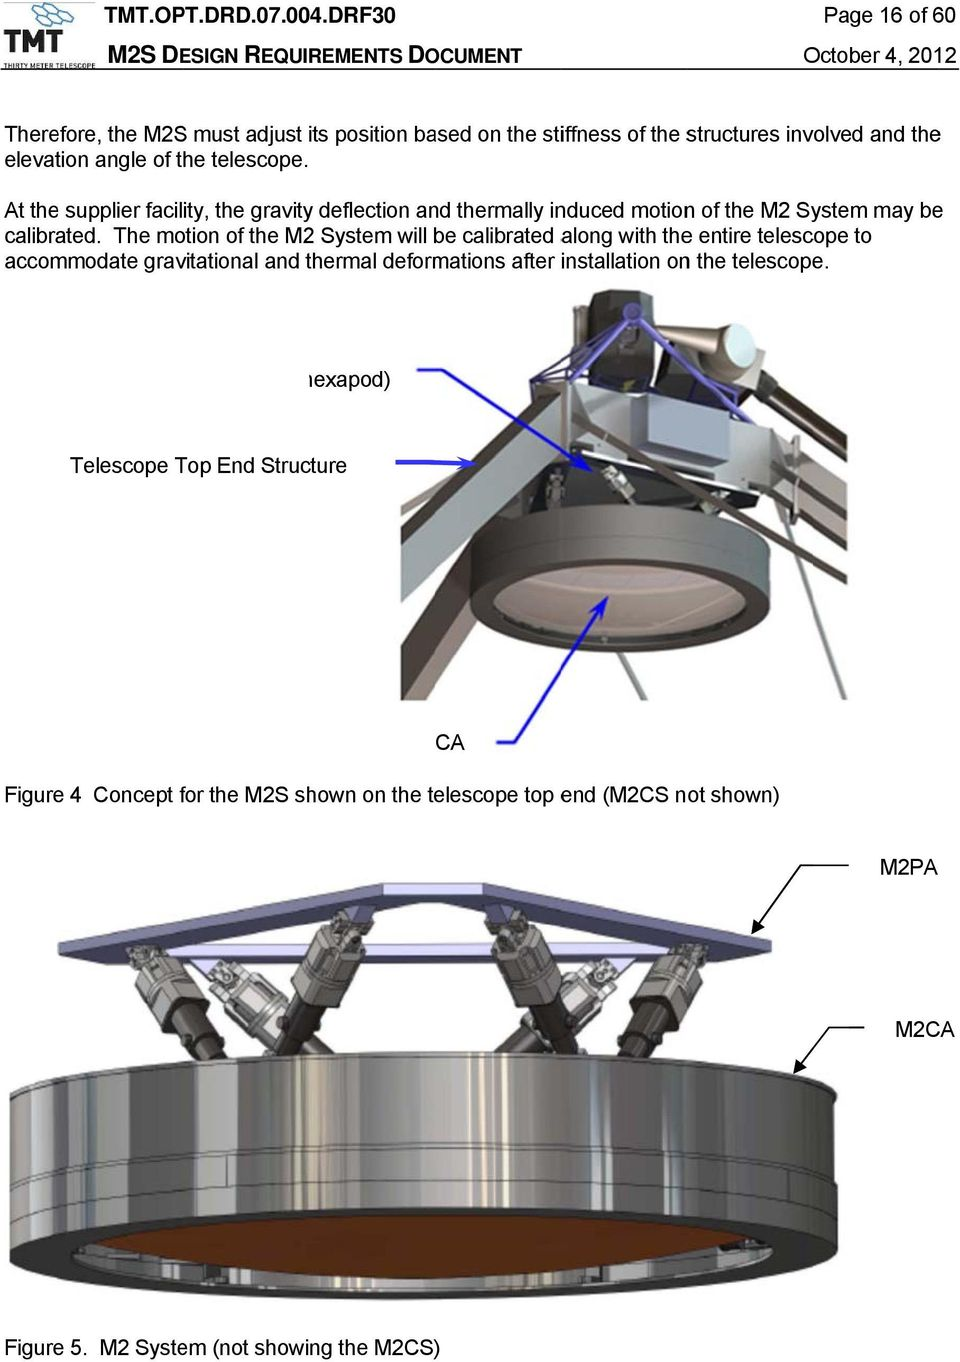 The motion of the M2 System will be calibrated along with the entire telescope to accommodate gravitational and thermal deformations after installation on the